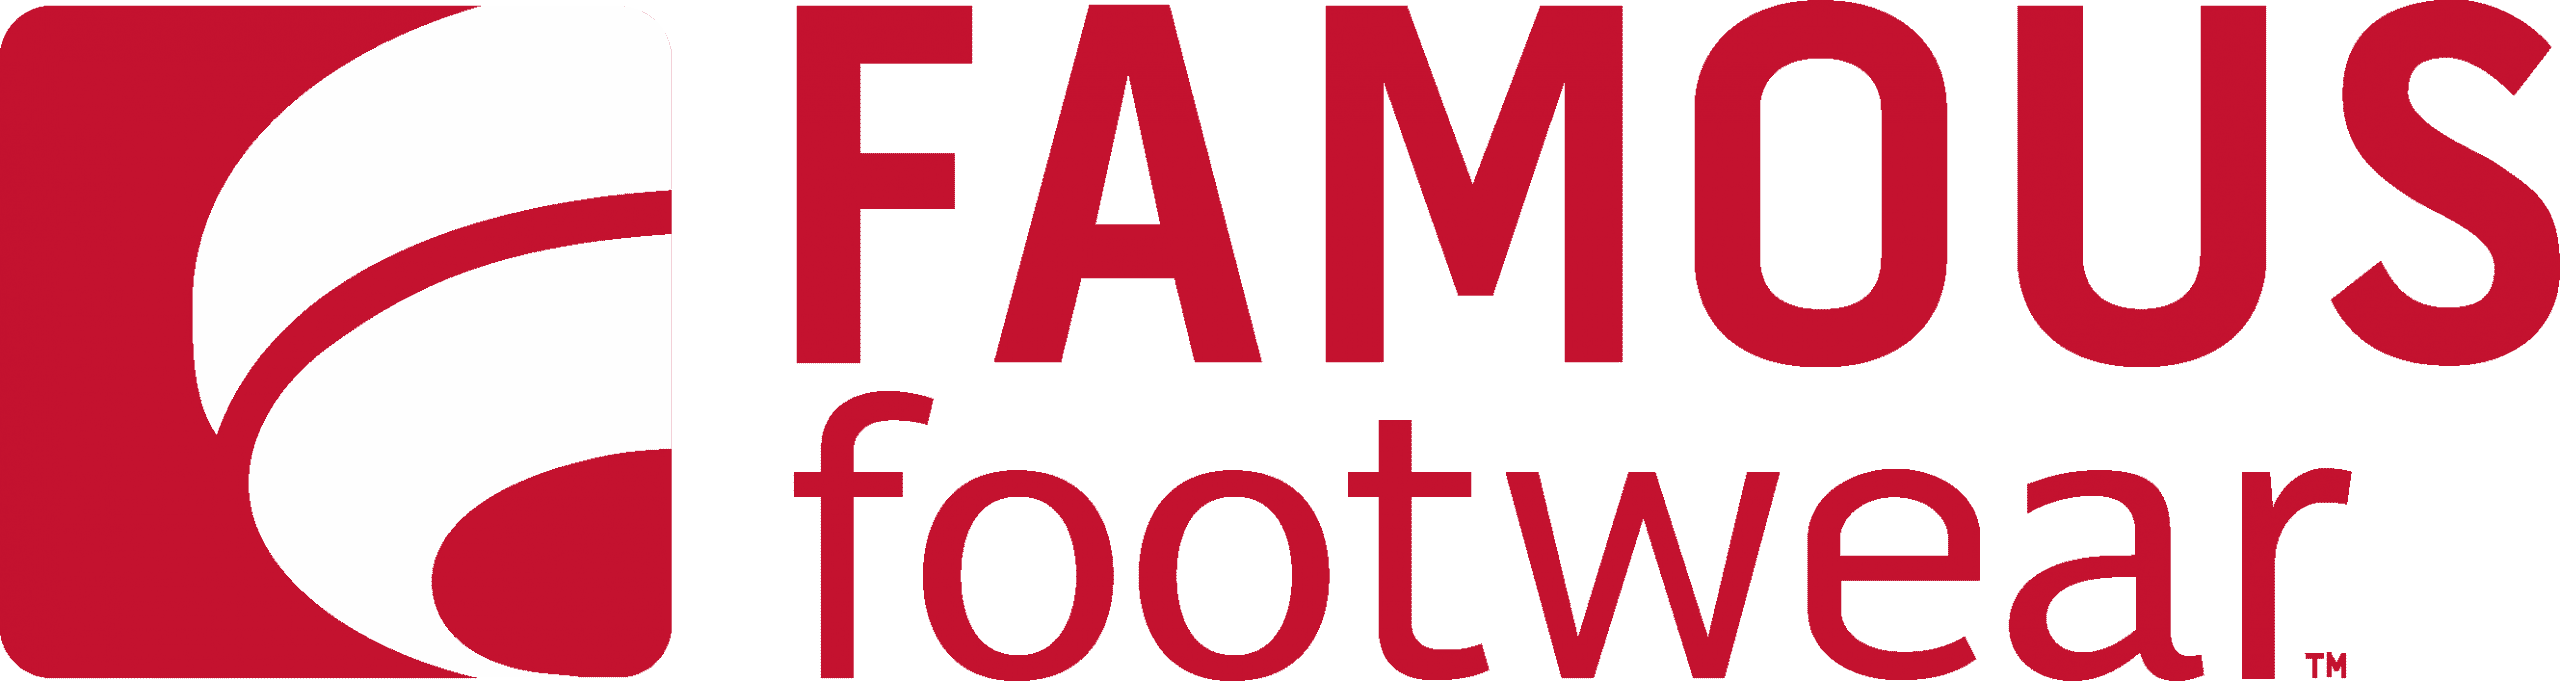 60e86c61833 Famous Footwear offers an in-app mobile messenger and a generous rewards  program. The app pushes exclusive deals